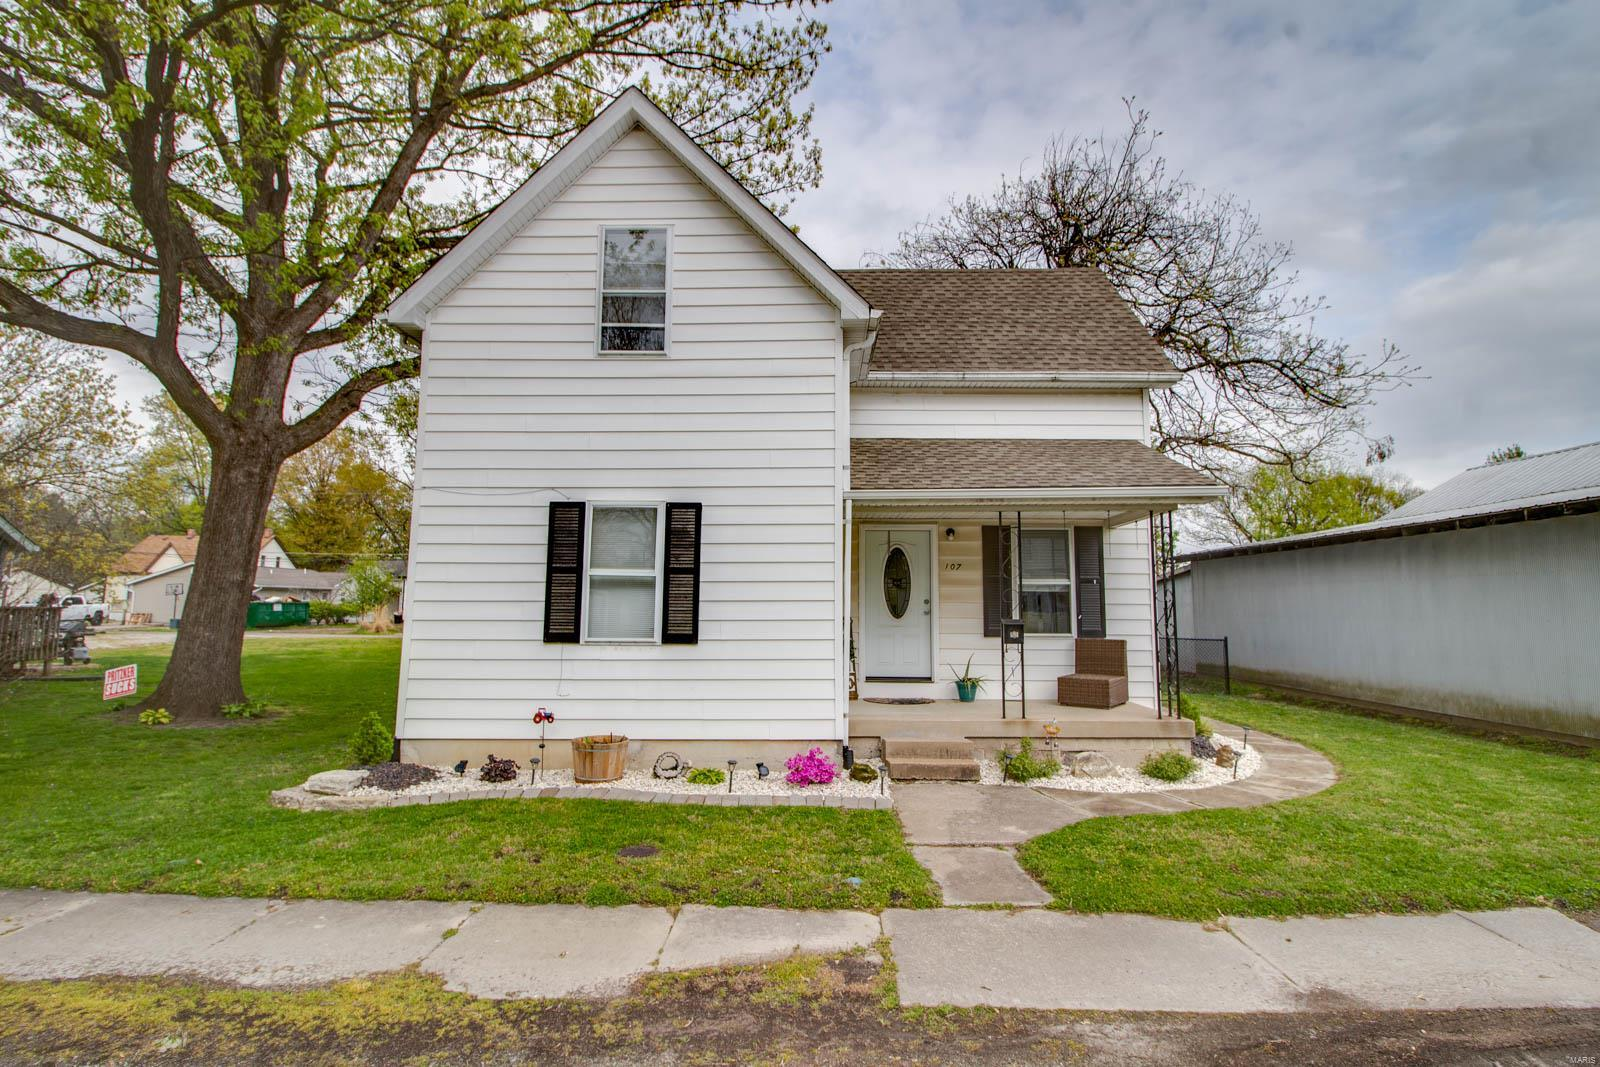 107 S Cherry Street Property Photo - Freeburg, IL real estate listing